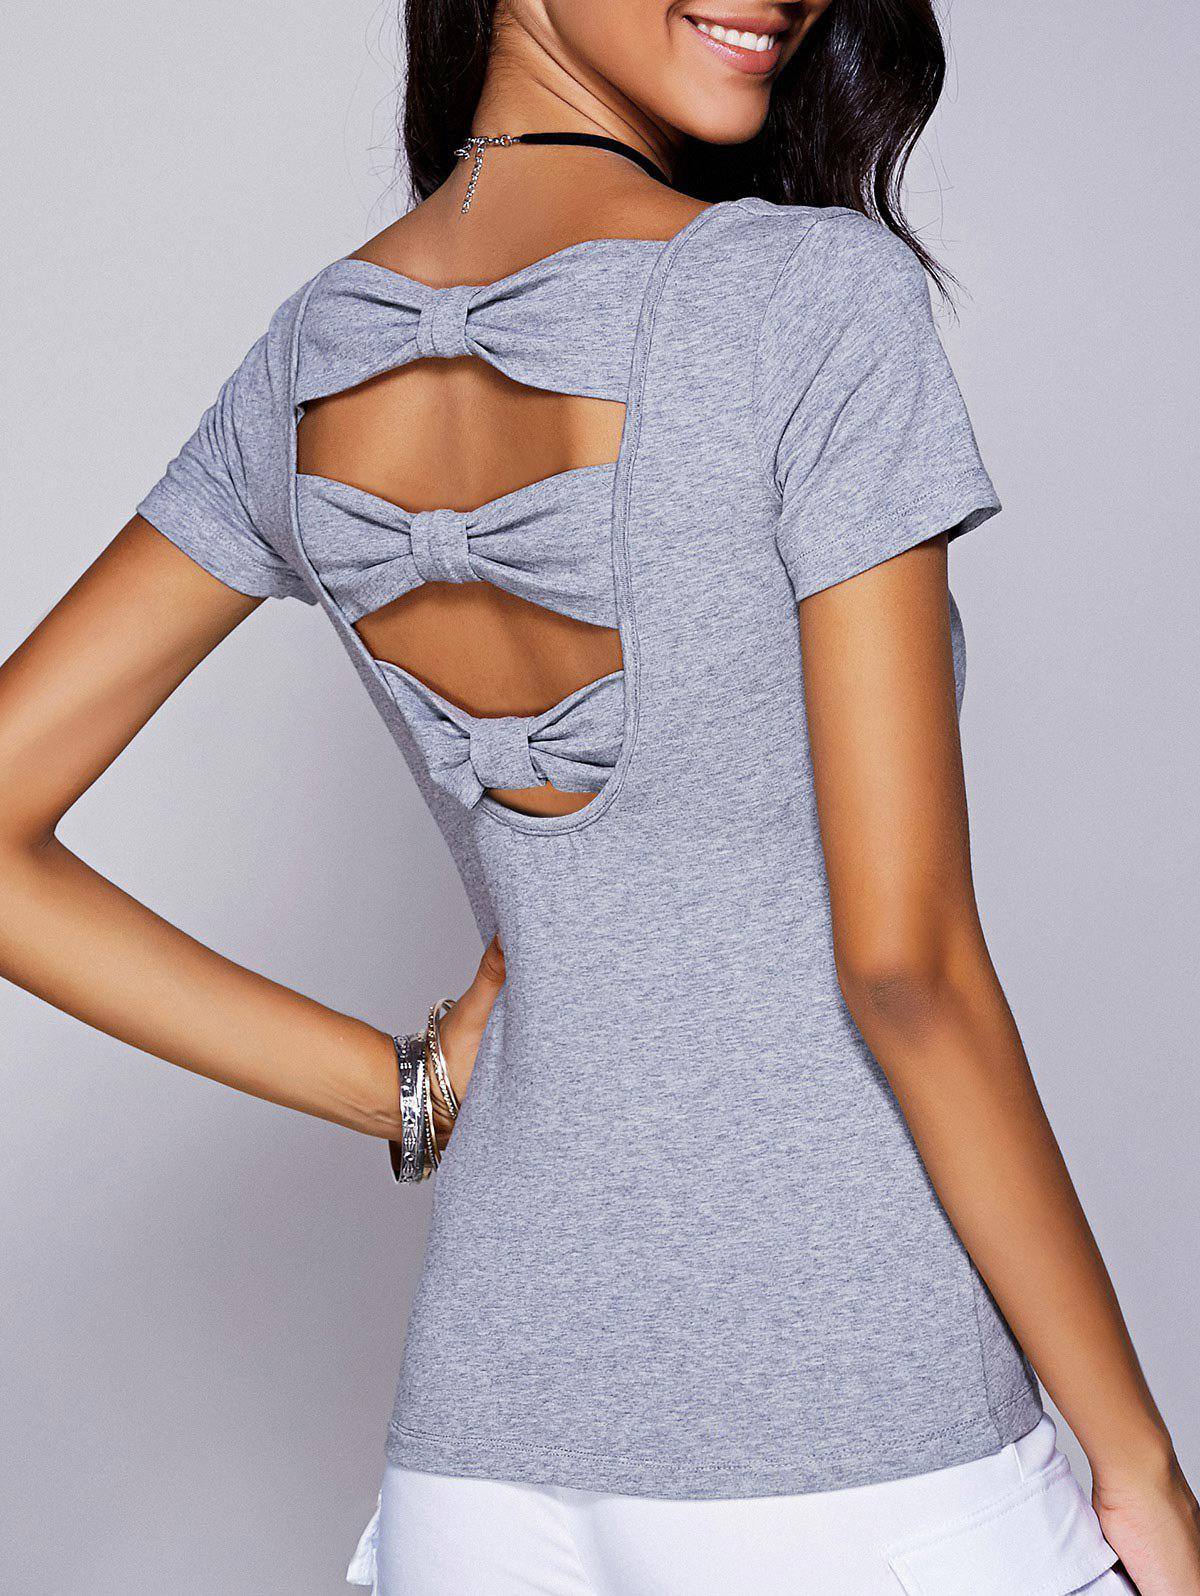 Casual Women's Scoop Neck Cut Out Bowknot T-Shirt - GRAY L